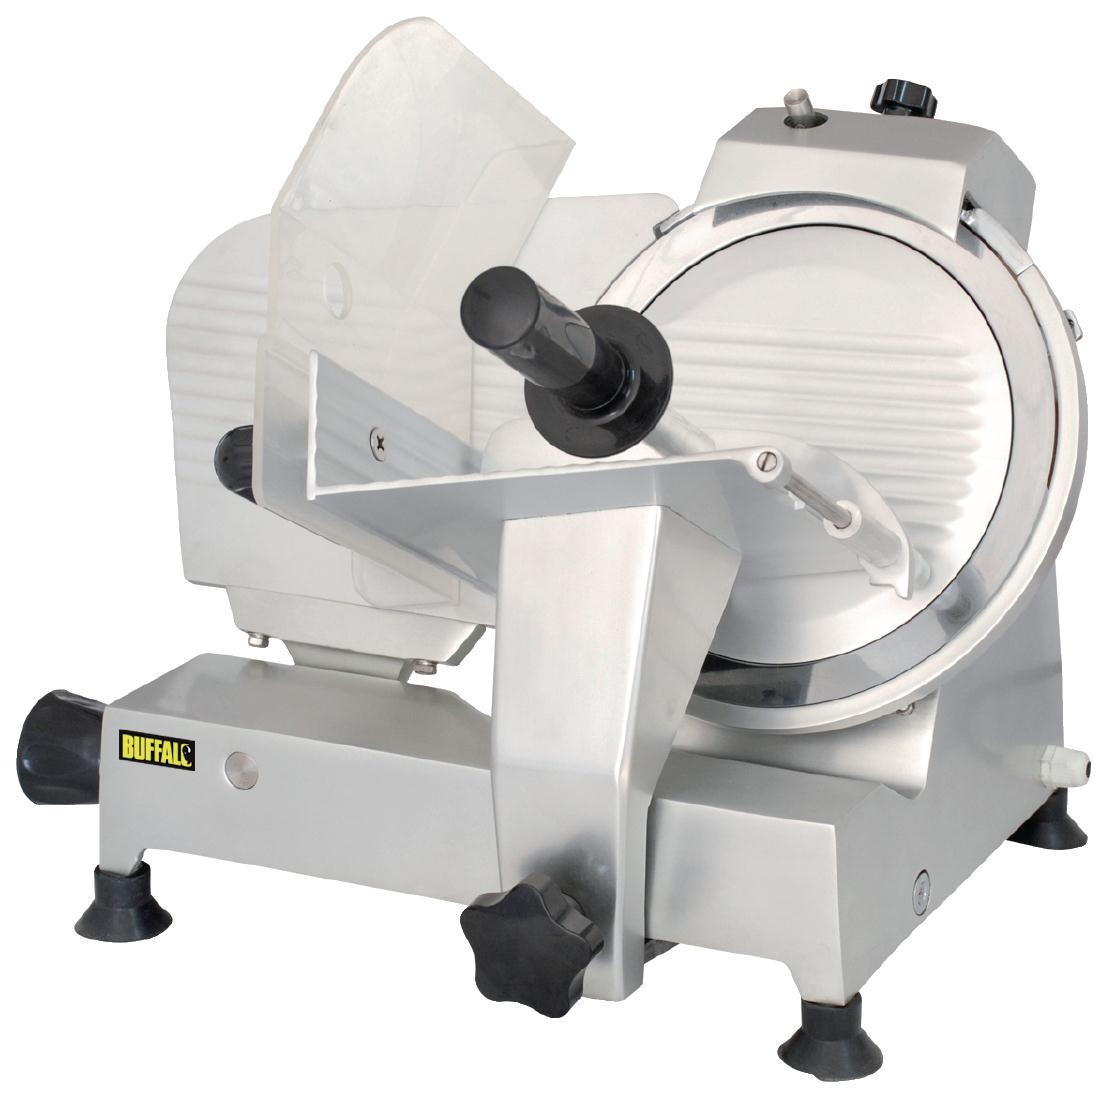 Meat Slicer - Kitchen Equipment | Jongor